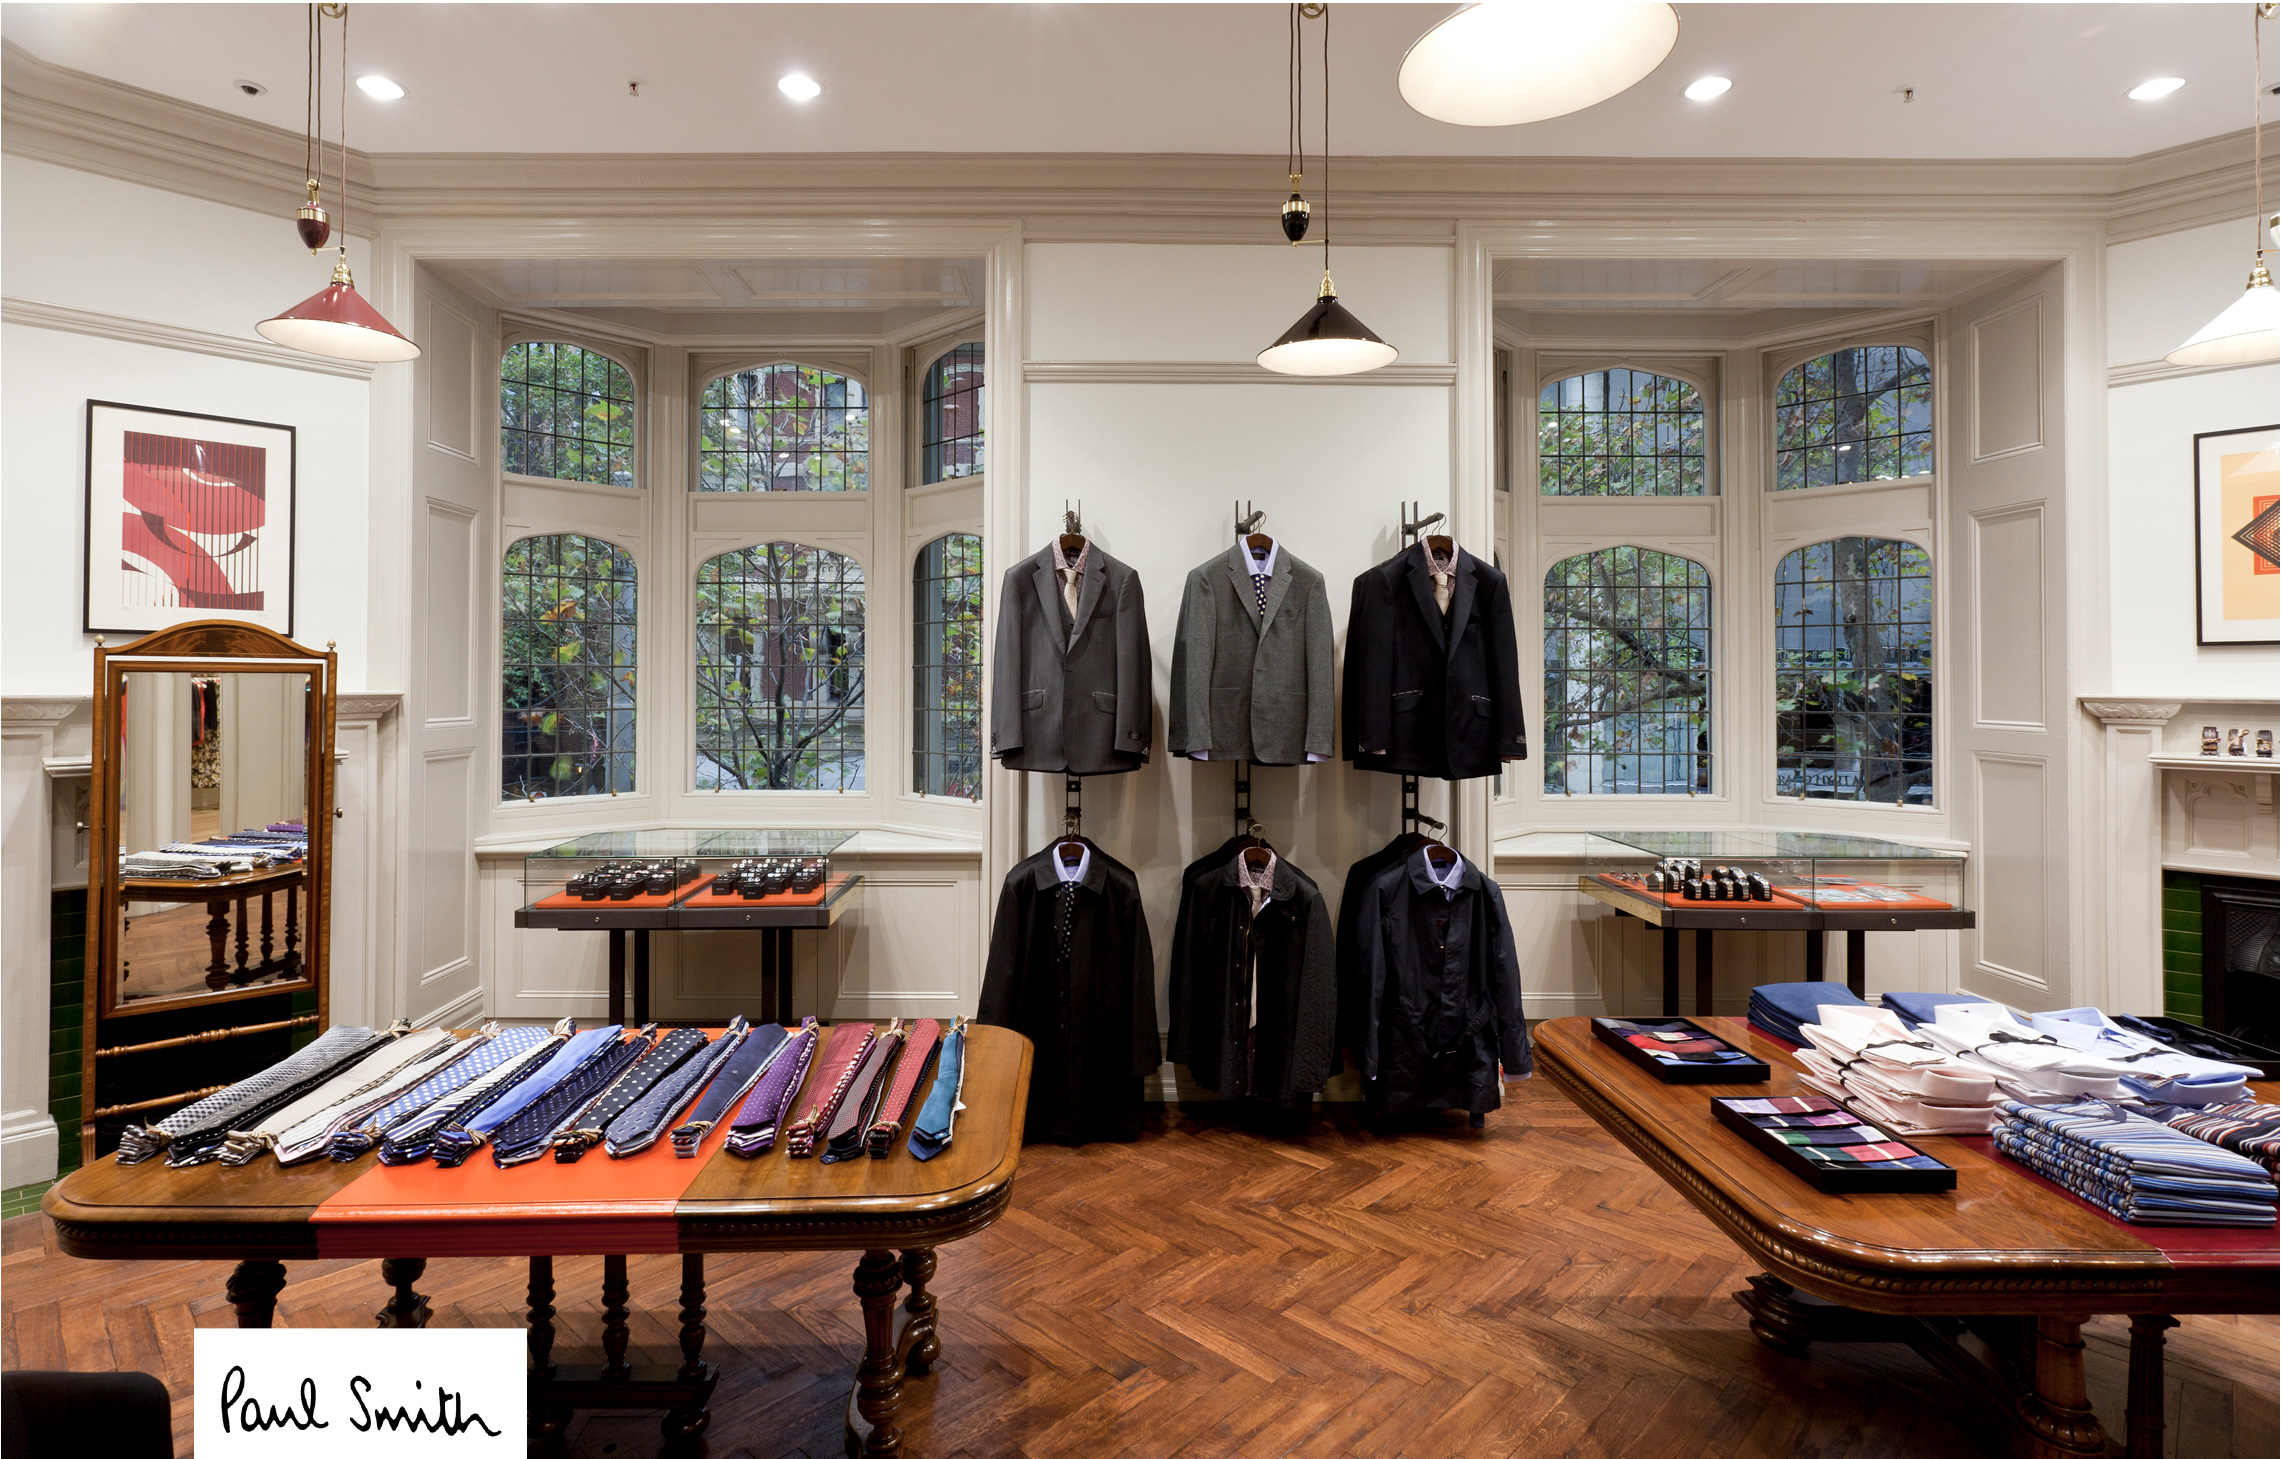 Paul Smith Store Example